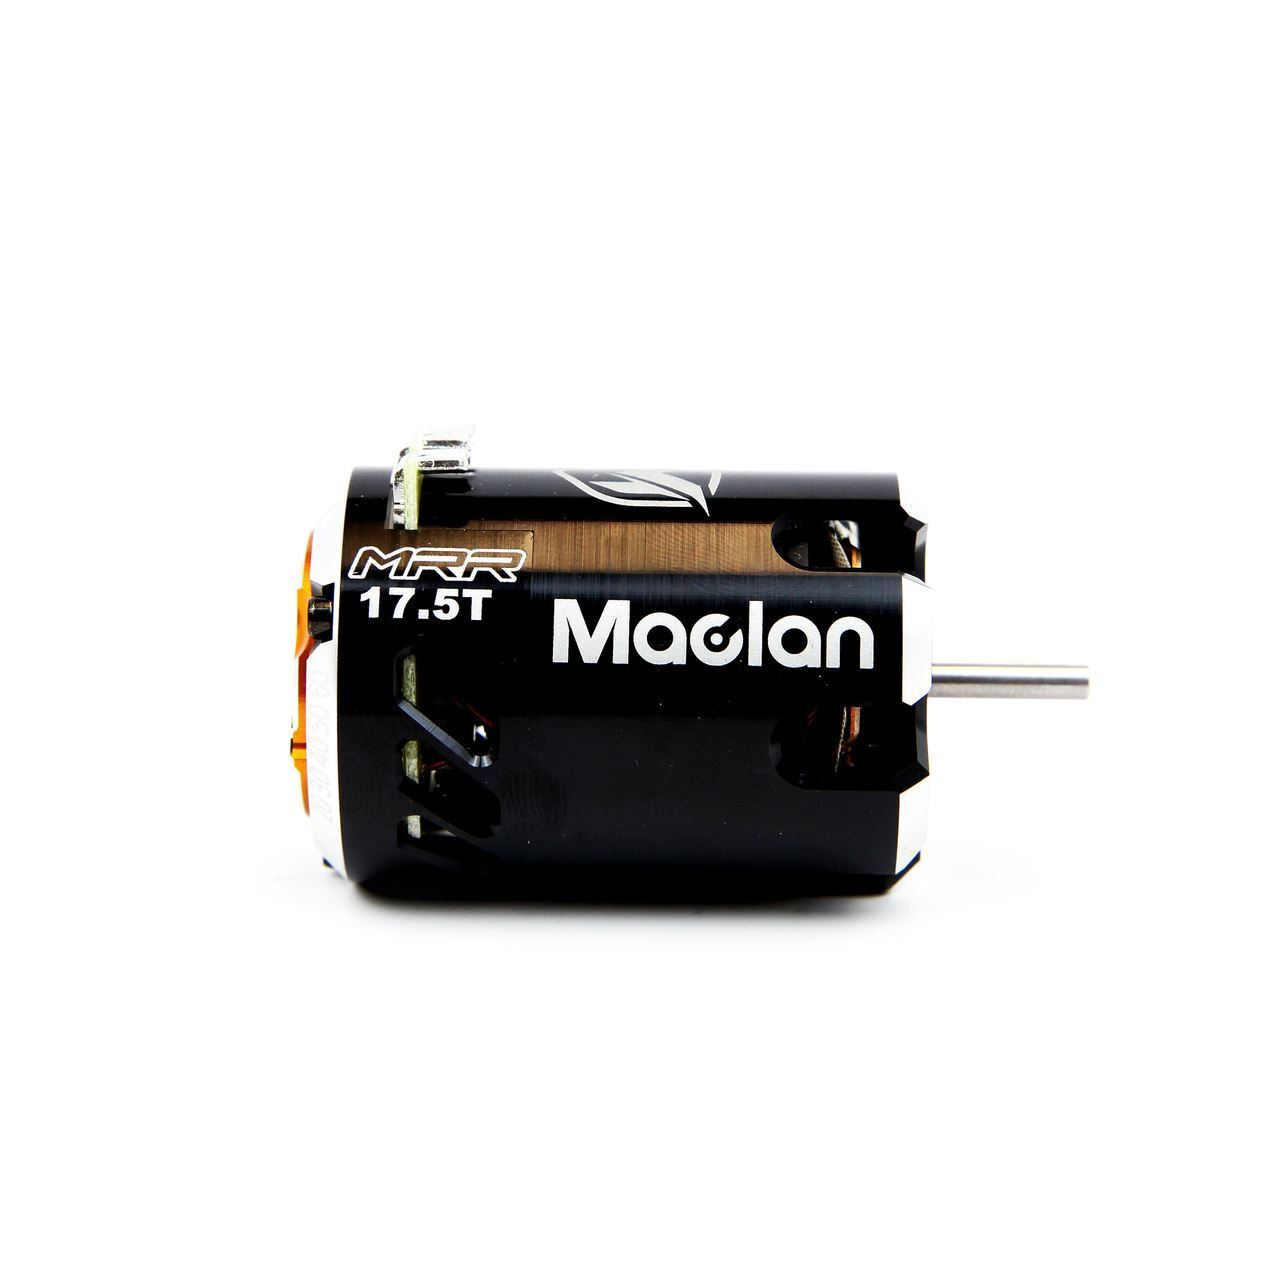 Maclan Racing - Maclan Mrr 17.5t Sensorosso Competition Motor